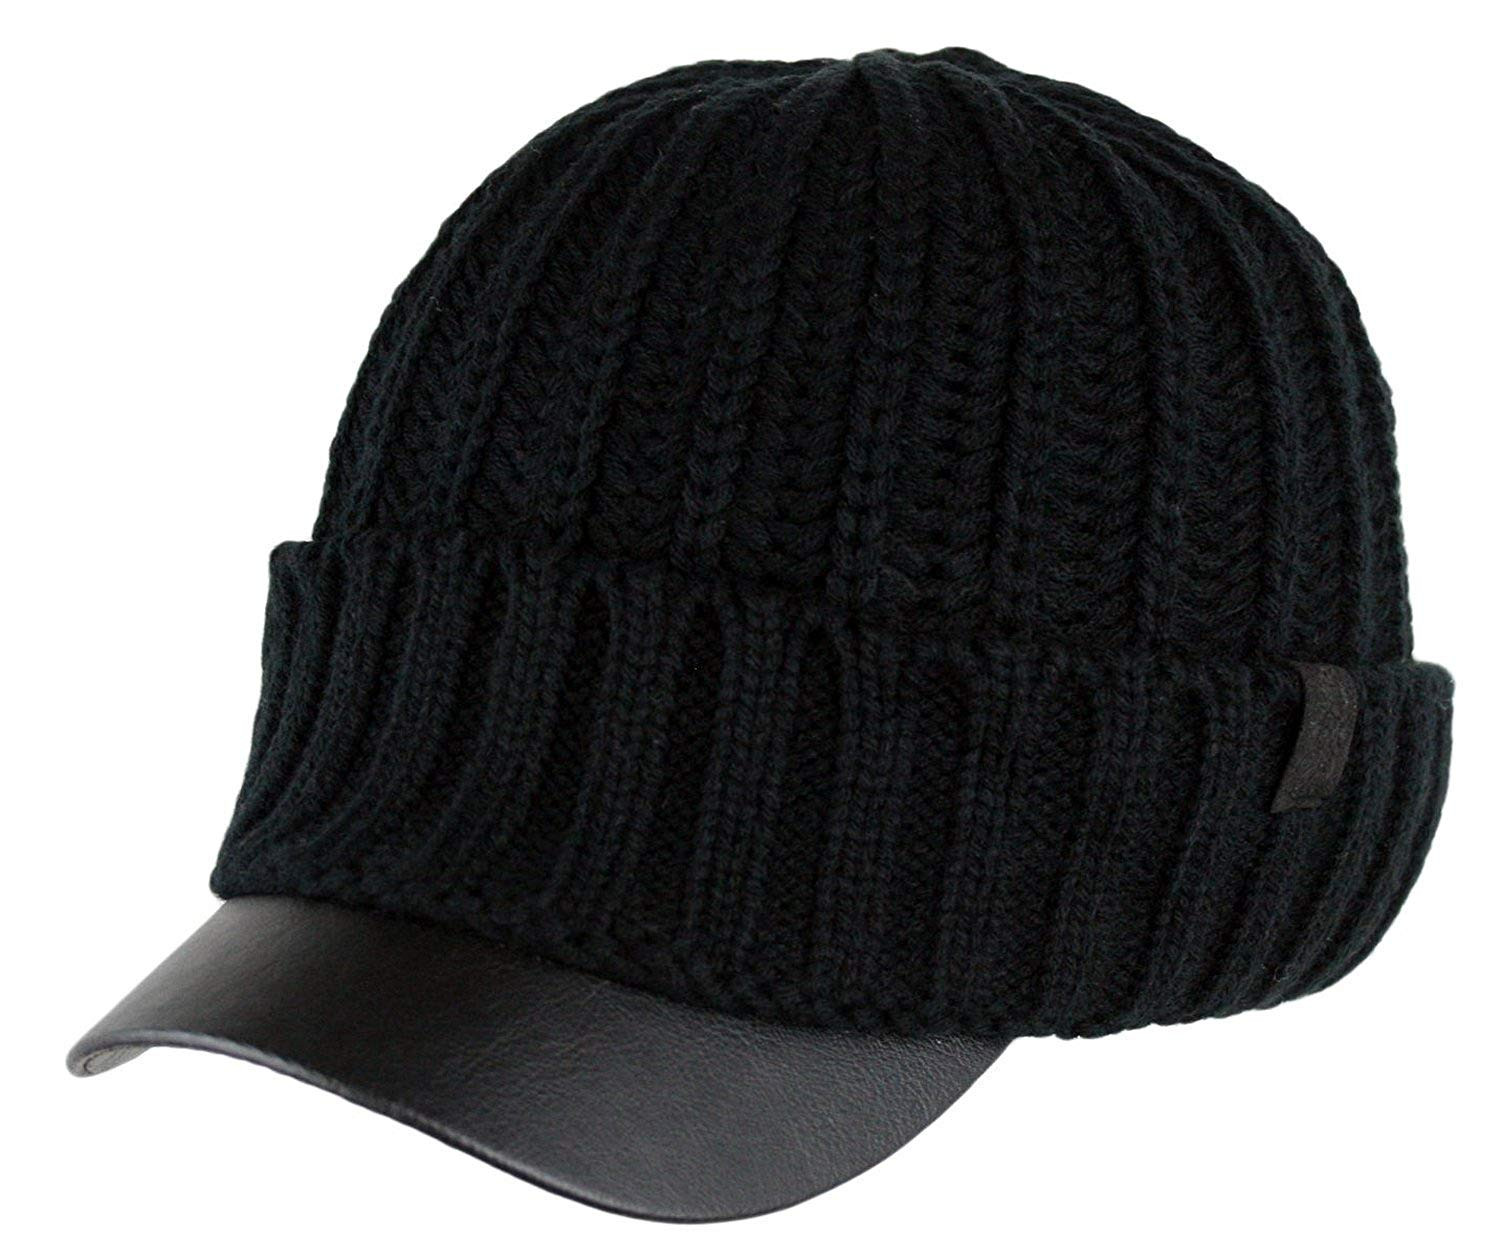 Best Of Men S Winter Visor Beanie Knitted Hat with Faux Leather Mens Knit Caps Of Delightful 41 Ideas Mens Knit Caps